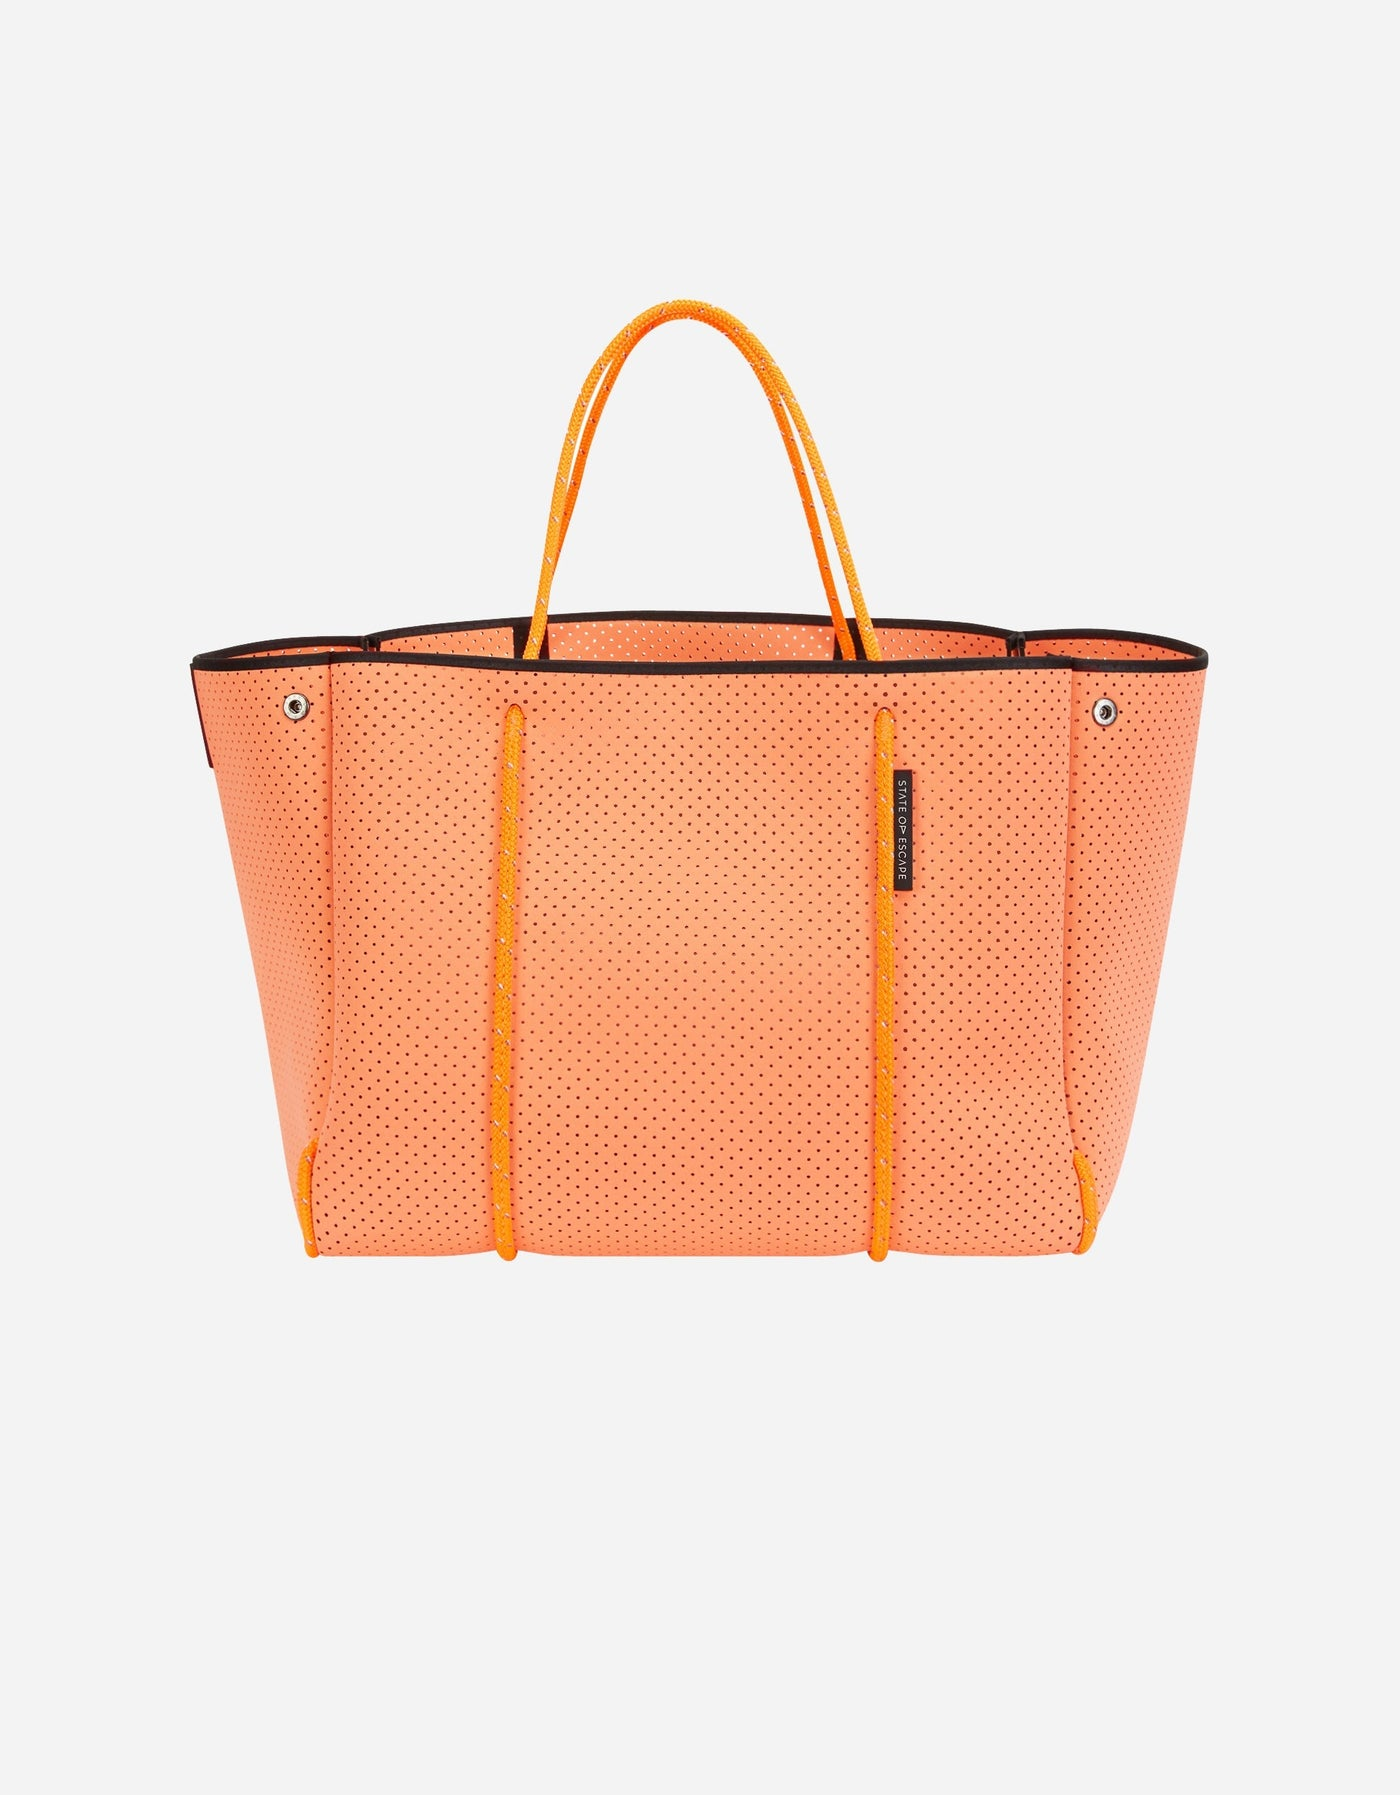 State of Escape x Olympia escape tote in sunset